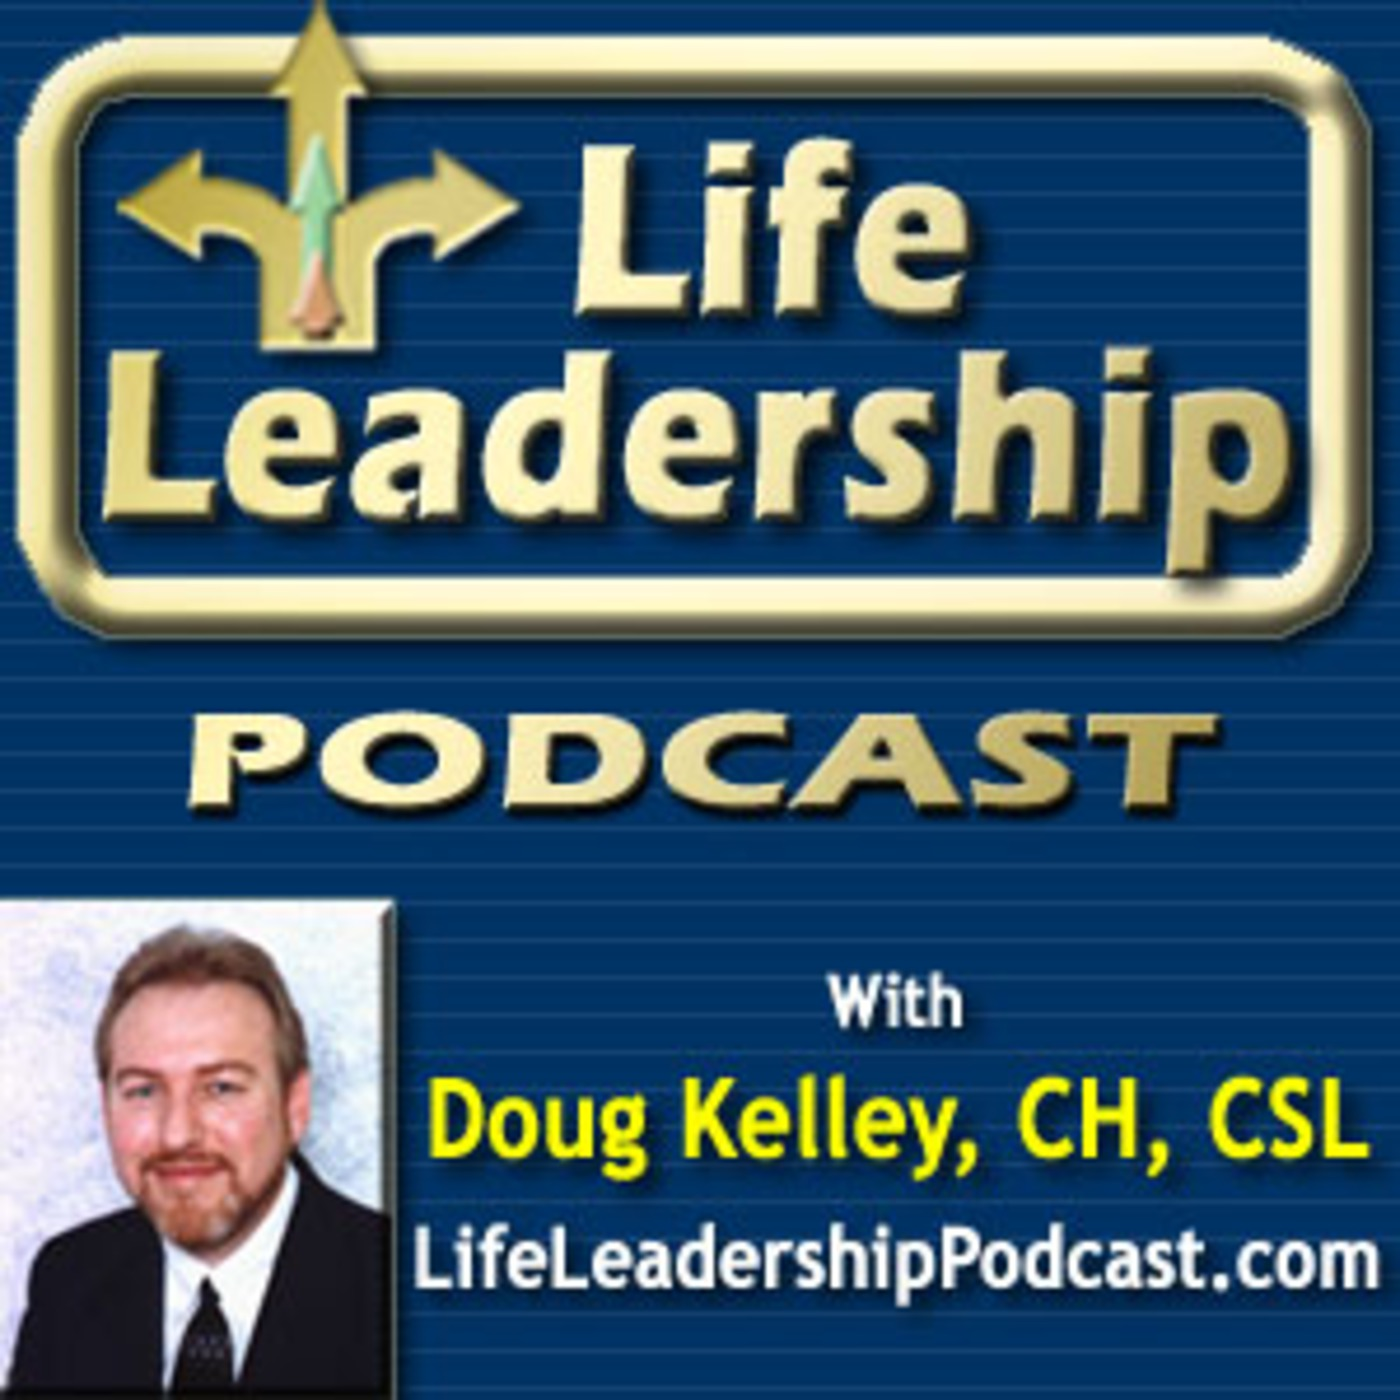 Life Leadership Podcast with Doug Kelley